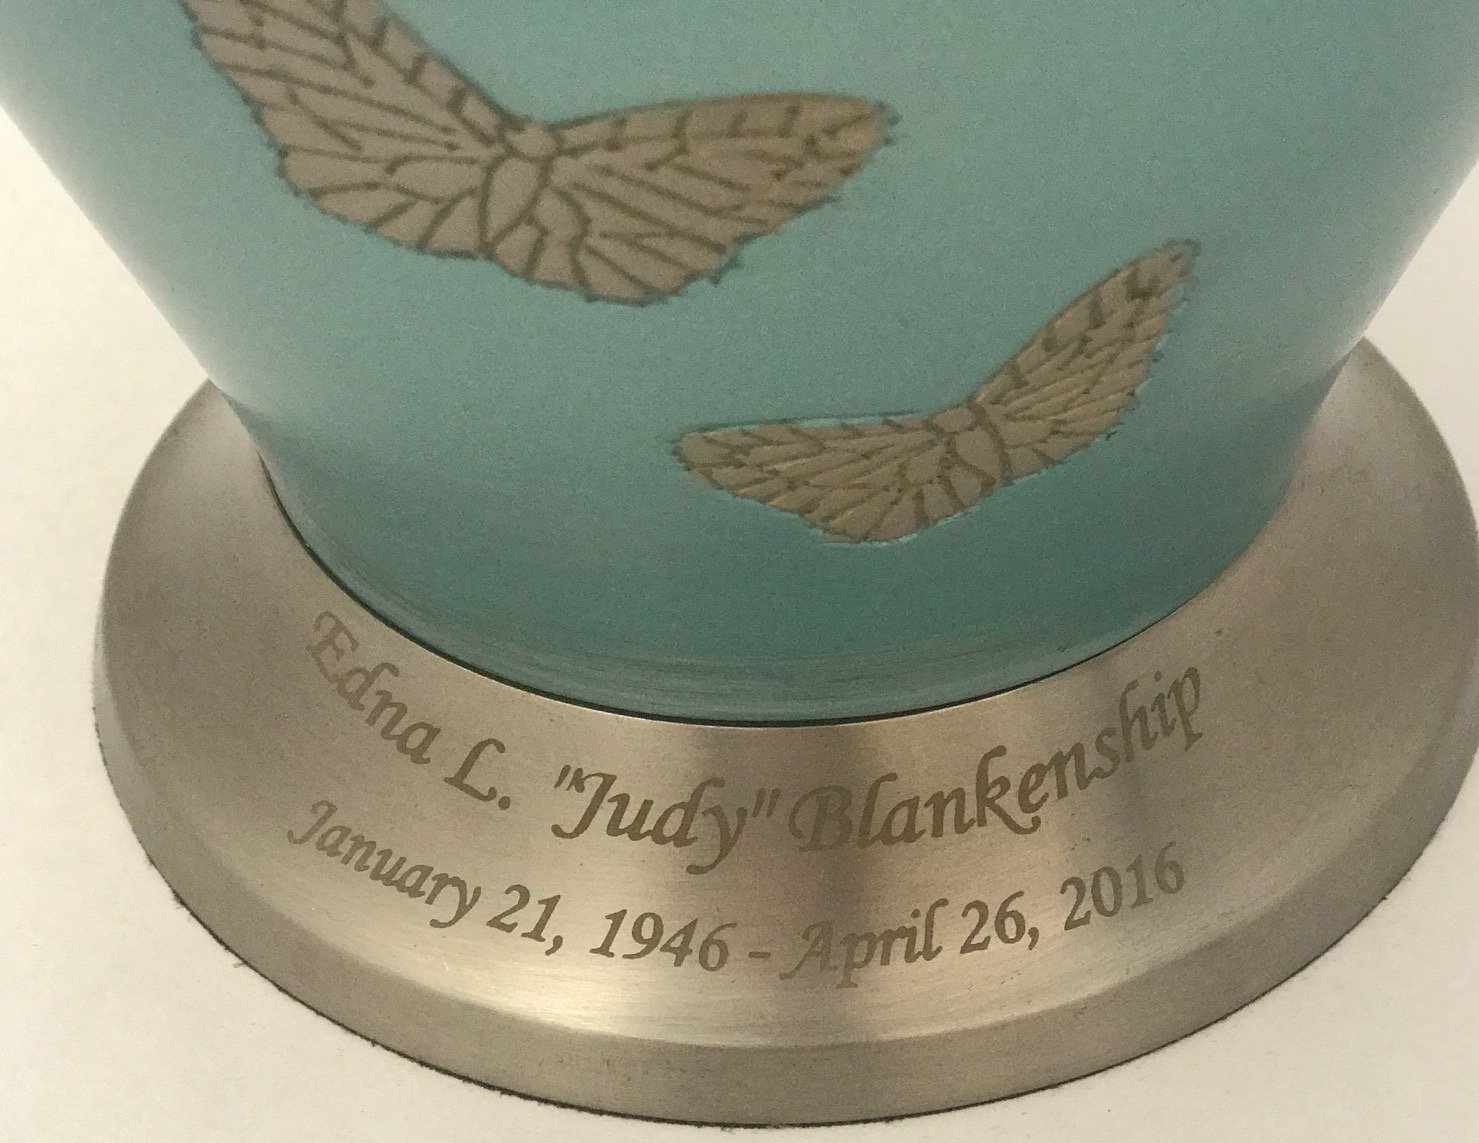 Customized Adult Butterfly Cremation Urn, Blue Funeral Urns With Keepsake and Personalisation by NWA (Image #2)